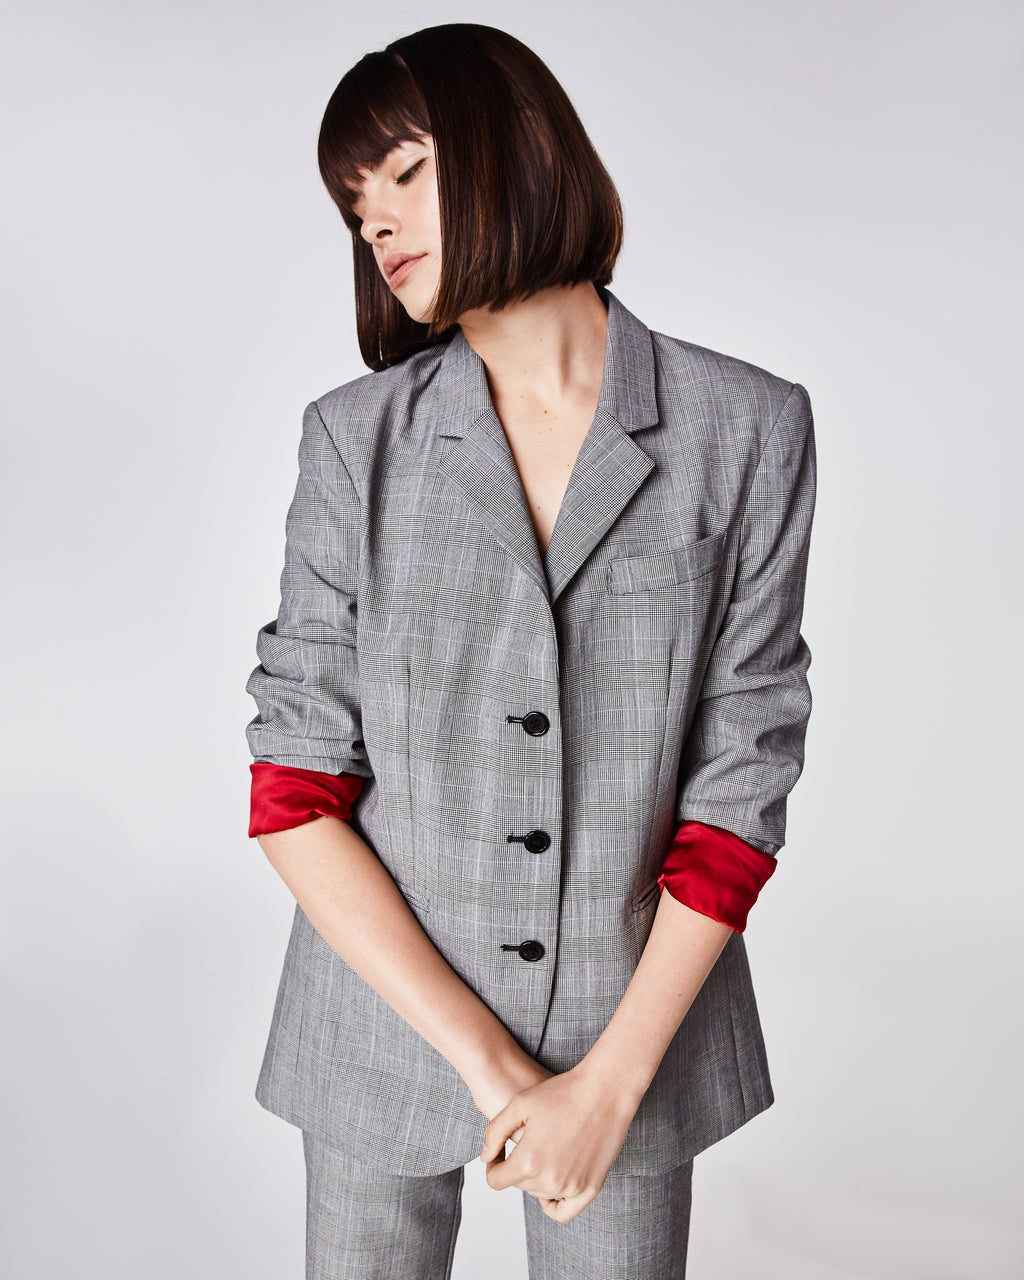 BQ10310 - GLEN PLAID BOYFRIEND JACKET - outerwear - coats - In an oversized boyfriend fit, this tripe-breastedblazer has a contrasting red lining and subtle shoulder pads. Fully lined.